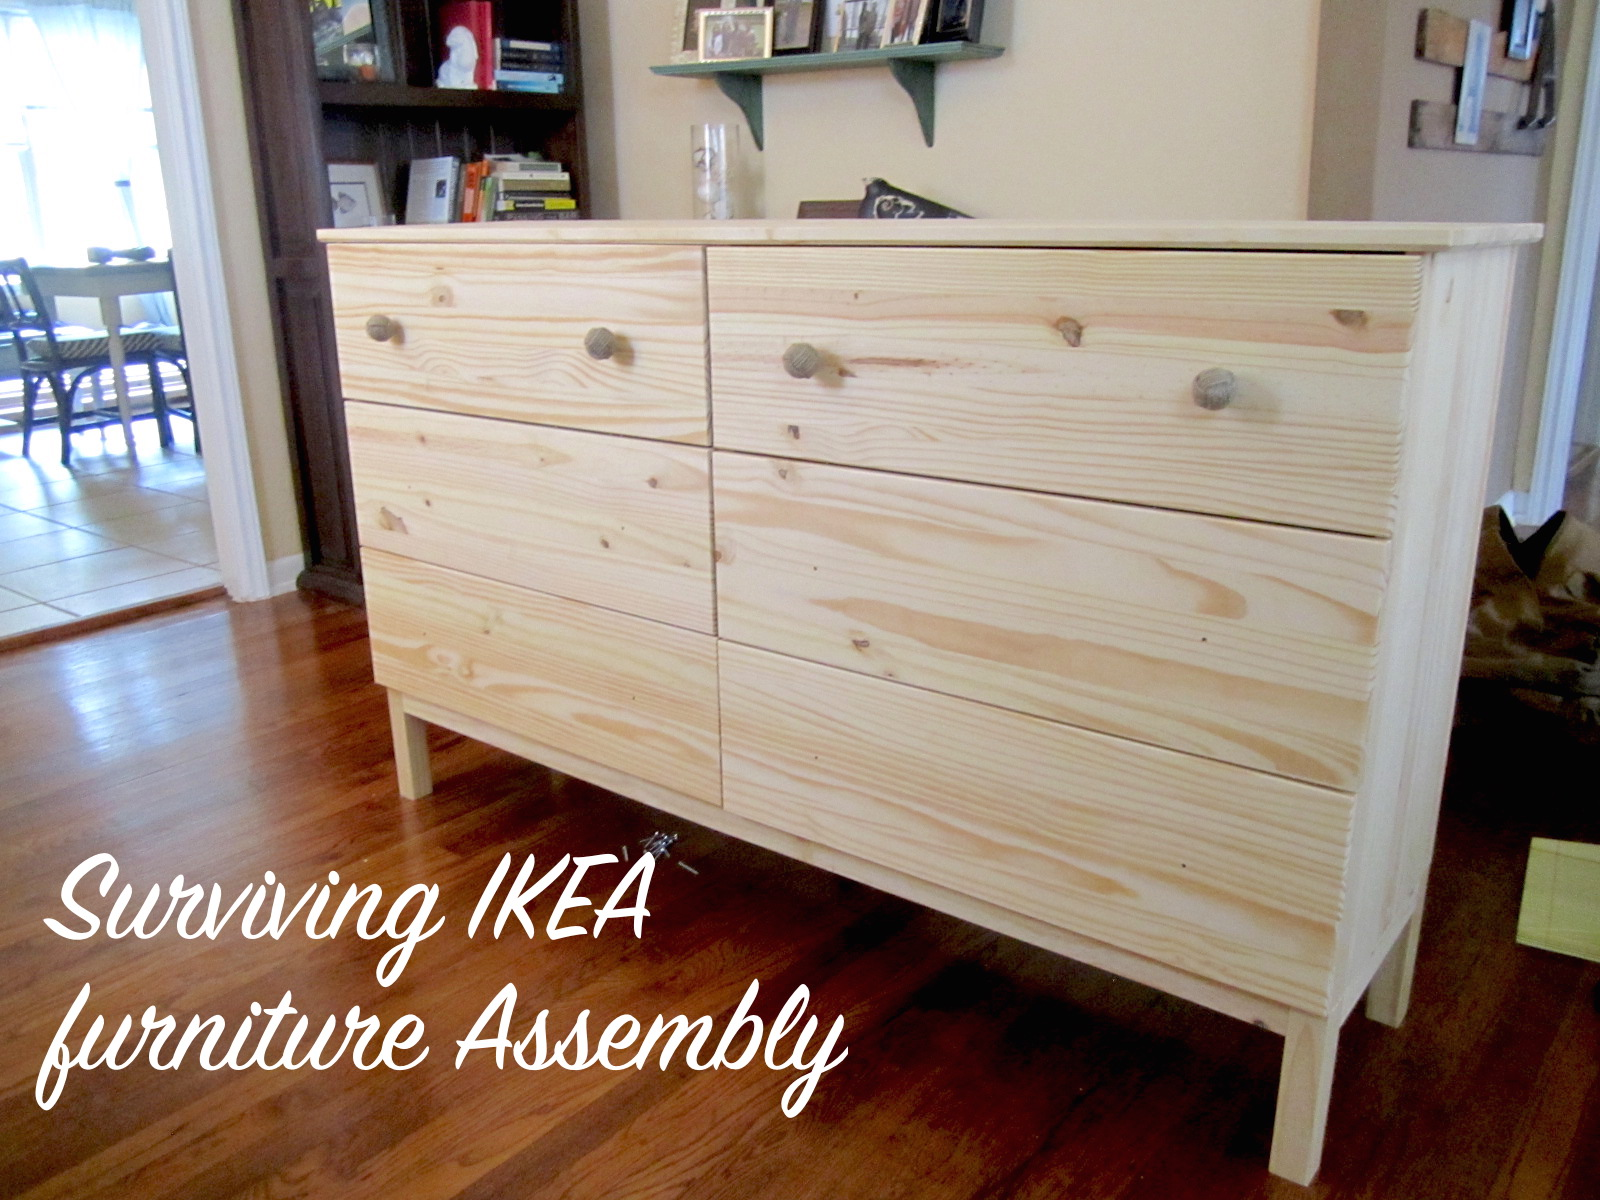 dresser drawers new haven market On tips for assembling ikea furniture